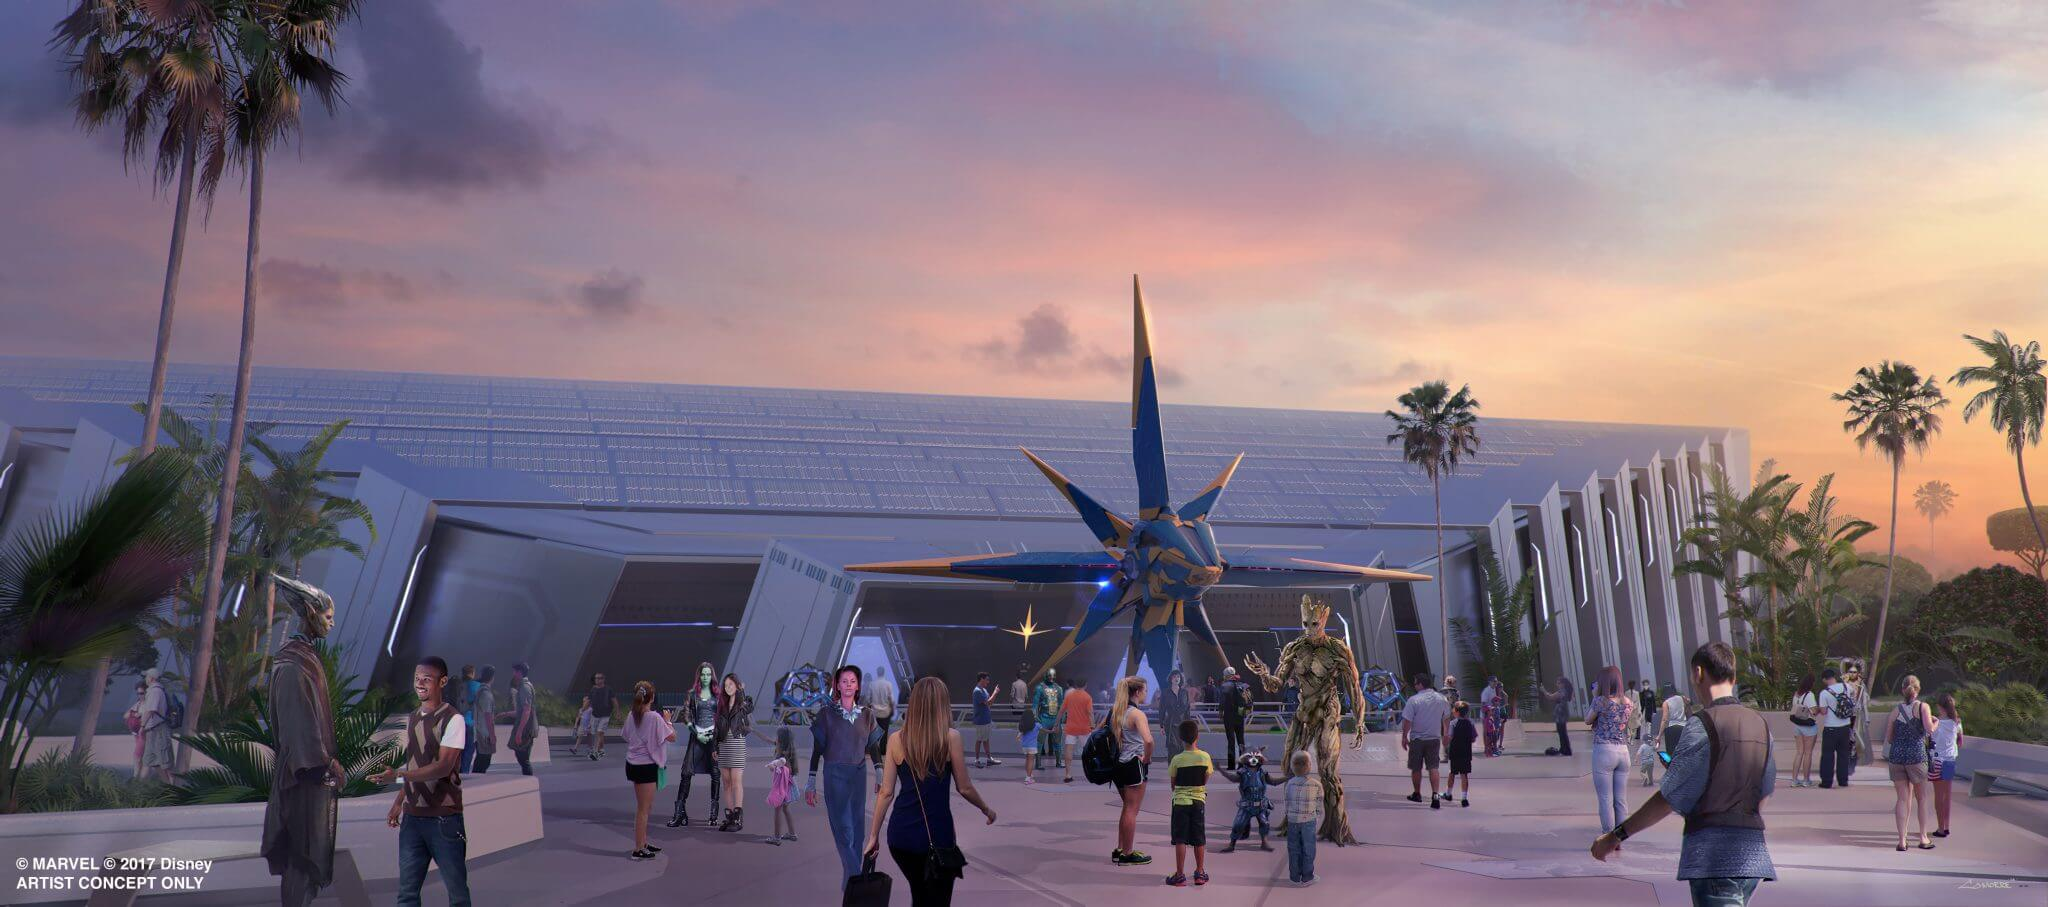 Guardians of the Galaxy - What's Coming to Disney World and Universal in 2019 and Beyond